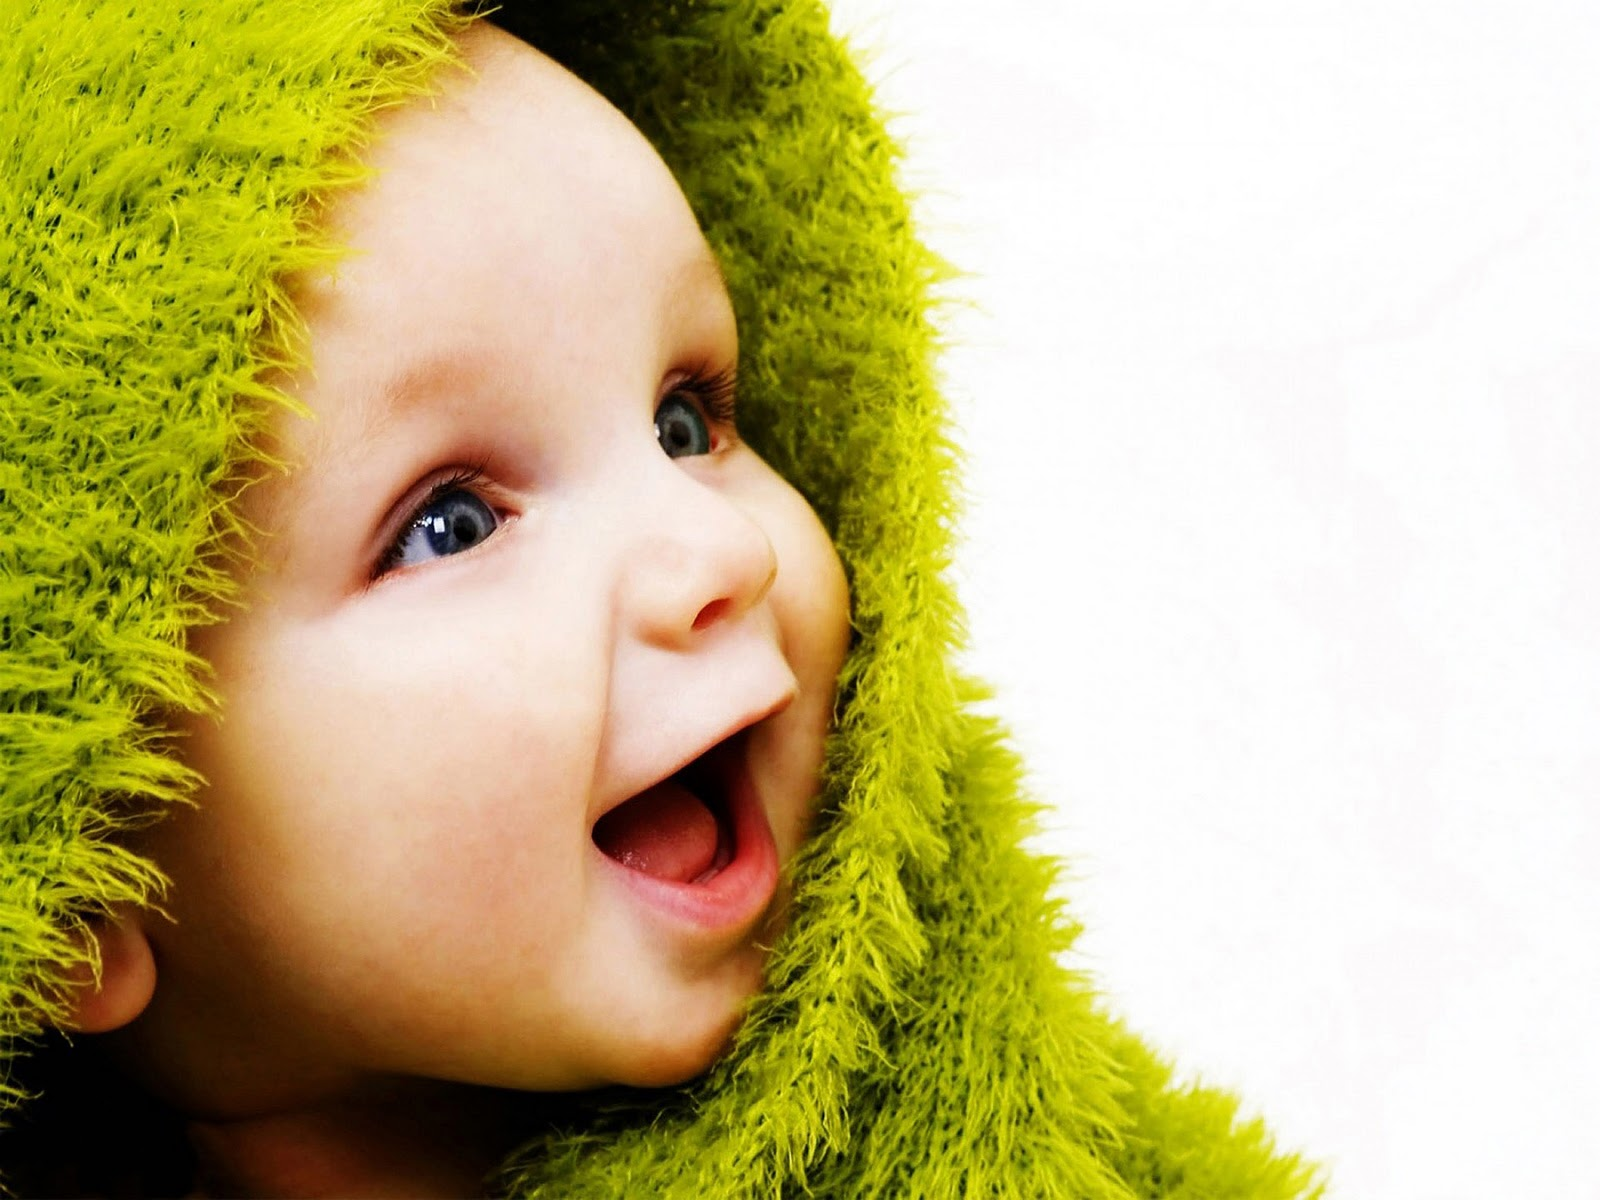 wallpaper children cute photography - photo #43